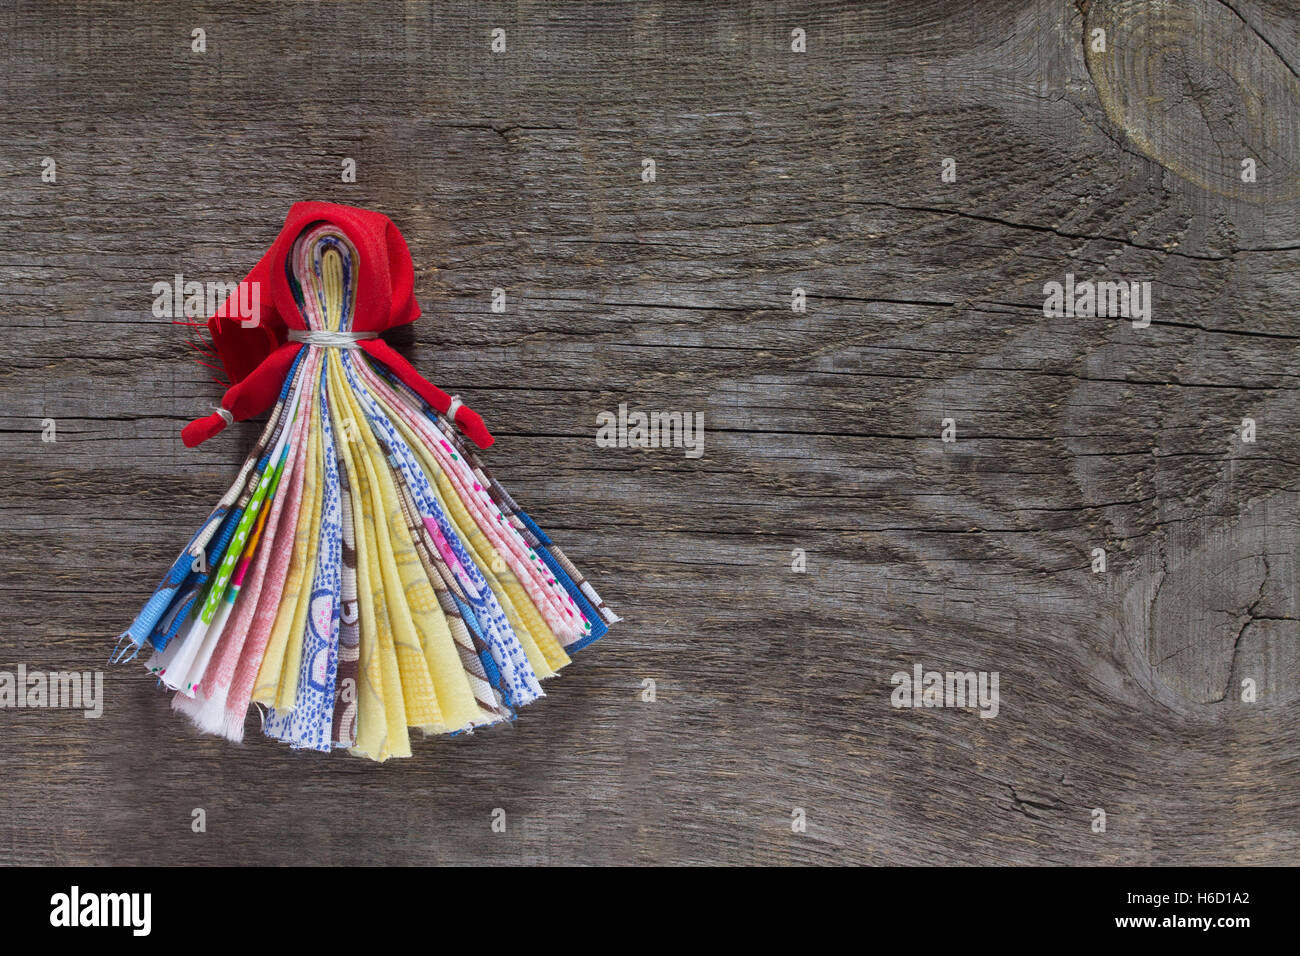 Slavic talisman doll. Russian traditional rag doll handmade. Top view, copy space. Sewing crafts. Stock Photo